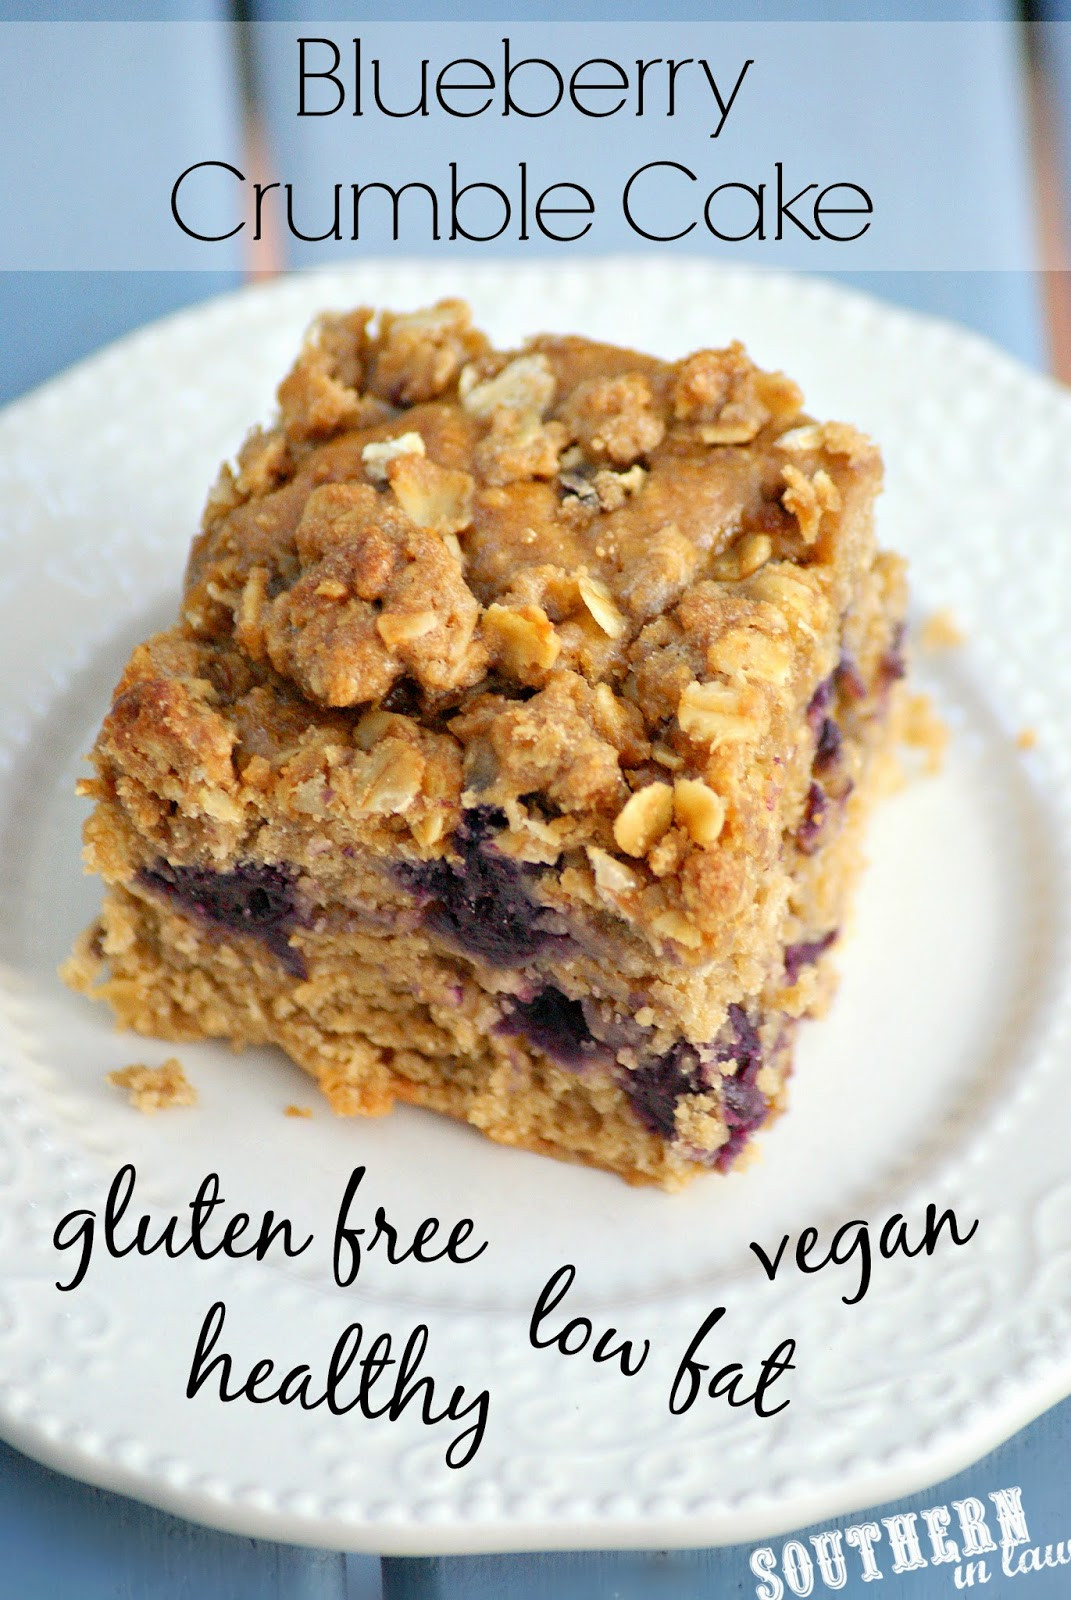 Low Cholesterol Low Sugar Recipes  Southern In Law Recipe Healthy Blueberry Crumble Cake